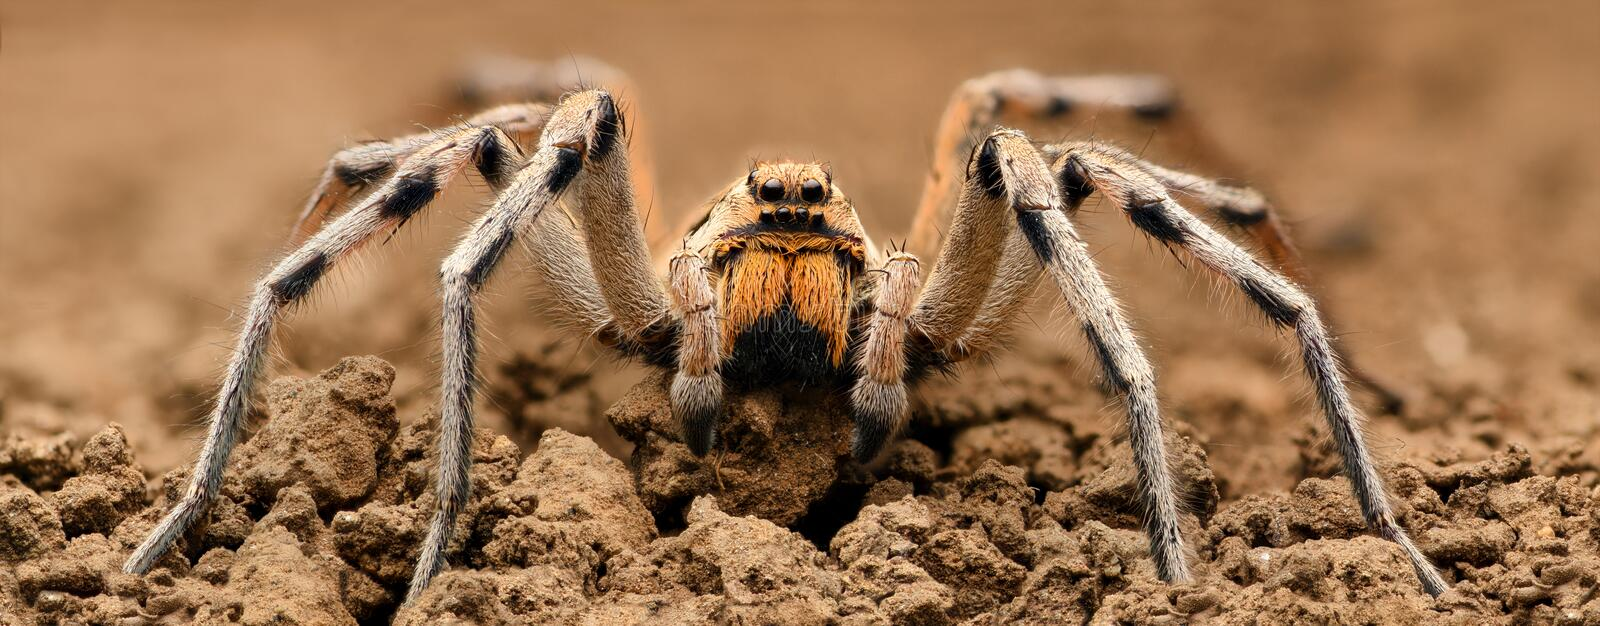 Extreme magnification - Wolf Spider, full body shot, high resolution. 2x stock photos